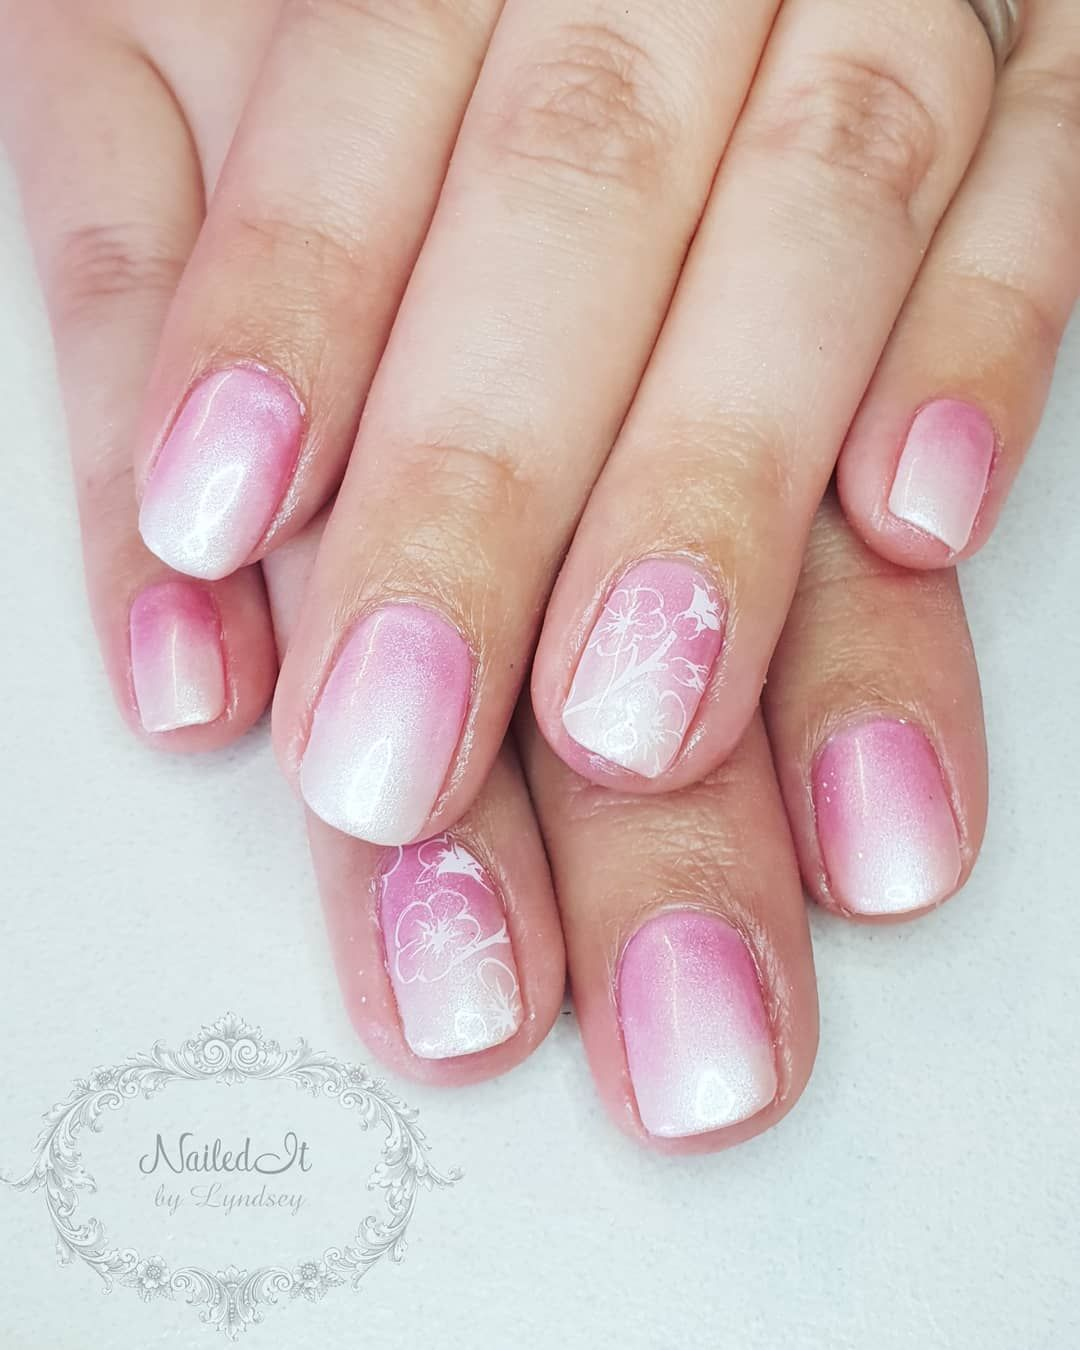 easy and glamorous ombre nail art design ideas for summer nails